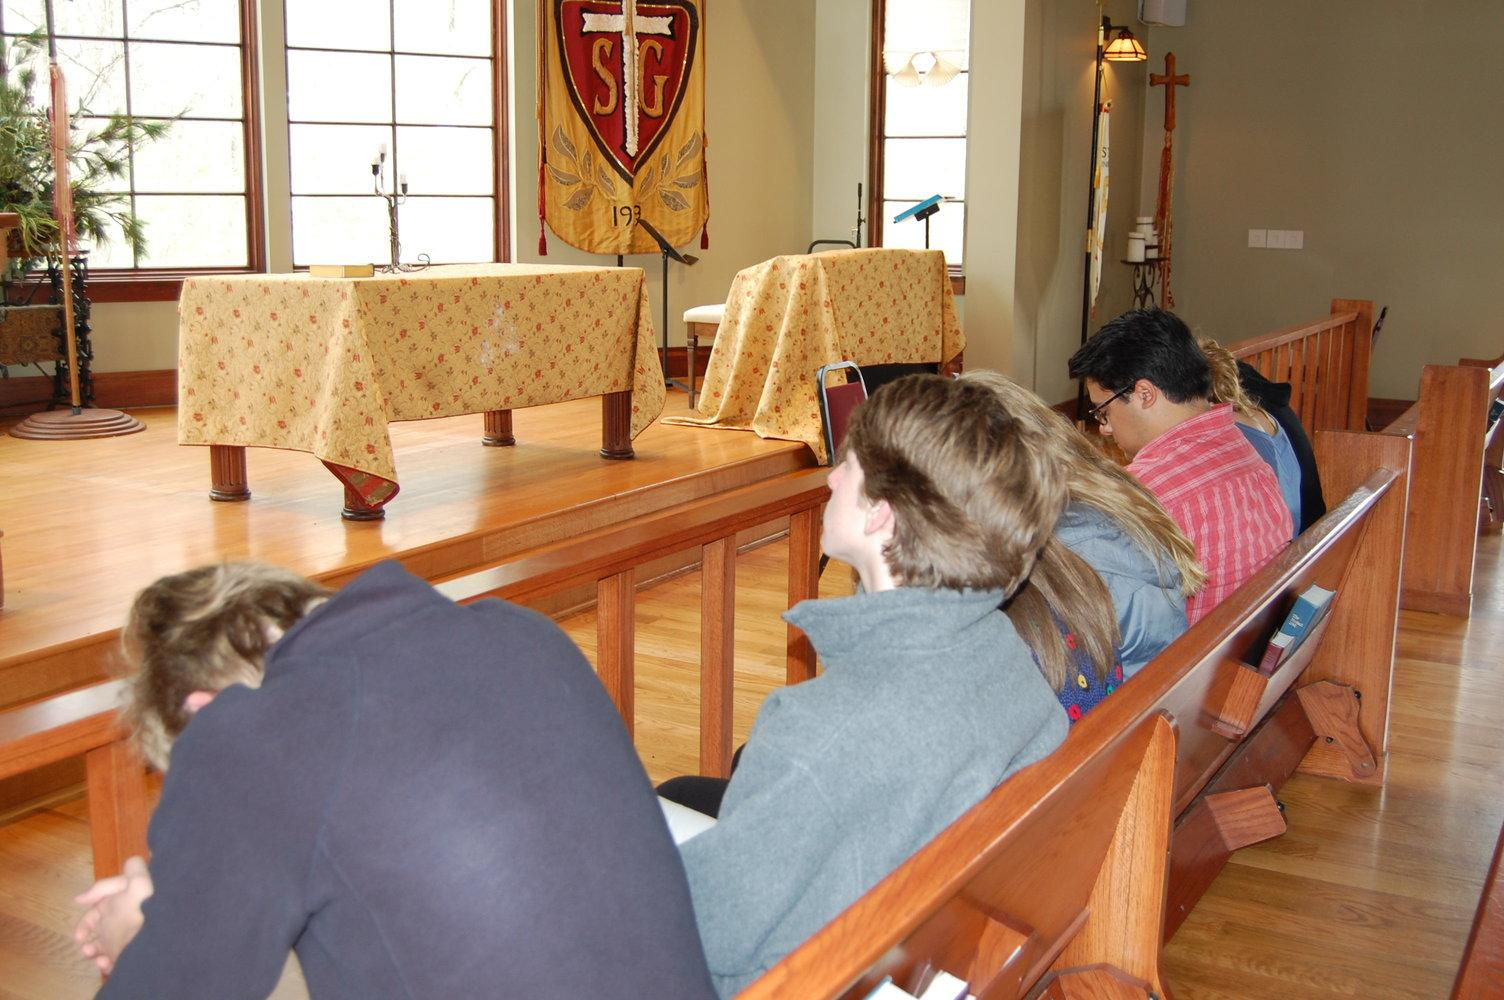 A student looks straight ahead while his peers pray in the Agape Chapel. Alternative chapels were introduced to the St. George's Upper School in 2006 and have evolved significantly since then.